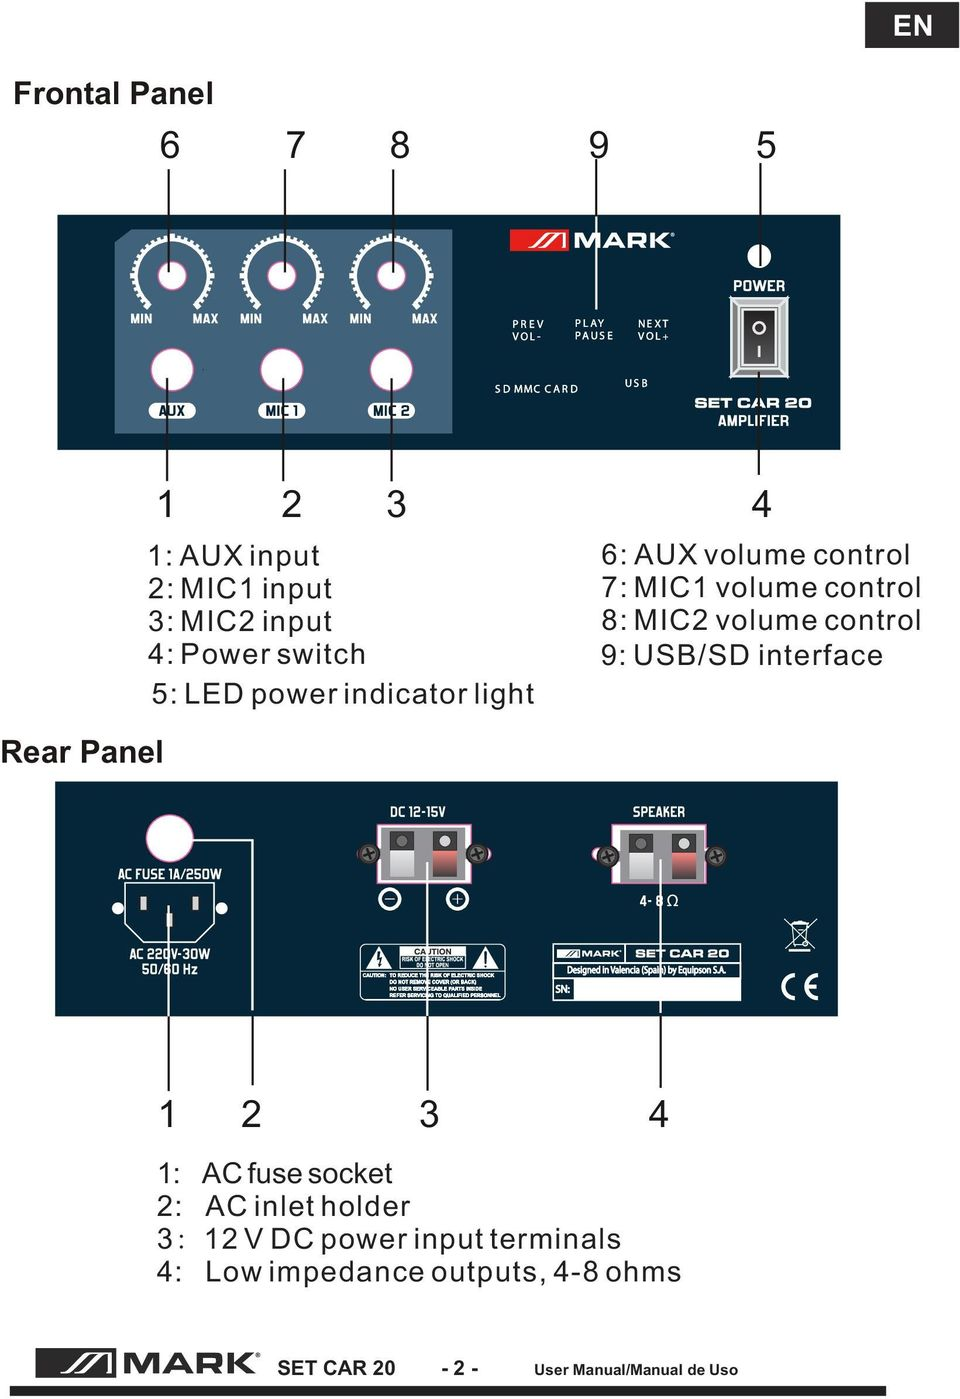 control 8: MIC2 volume control 9: USB/SD interface Rear Panel 1 1: 2: 3: 4: 2 3 4